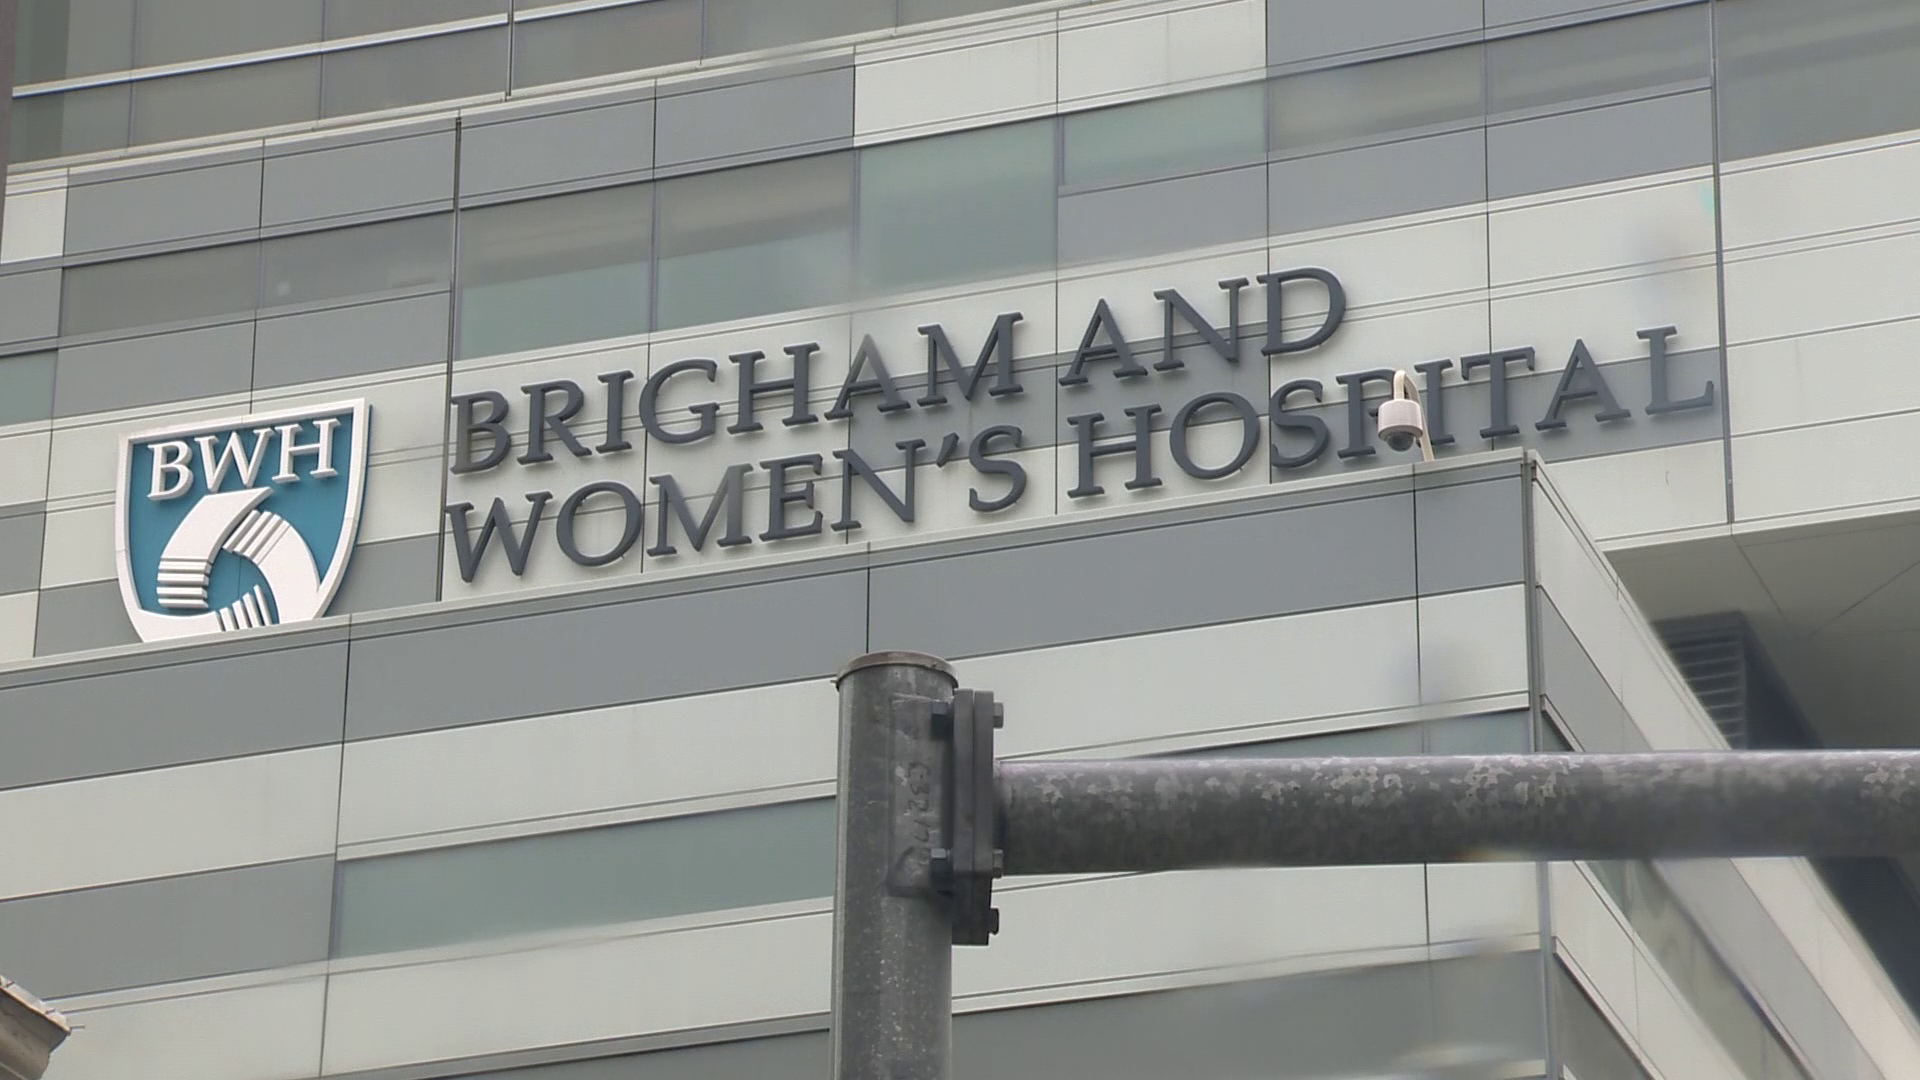 https://hips.htvapps.com/htv-prod-media.s3.amazonaws.com/images/brigham-and-womens-hospital-1501606366.png